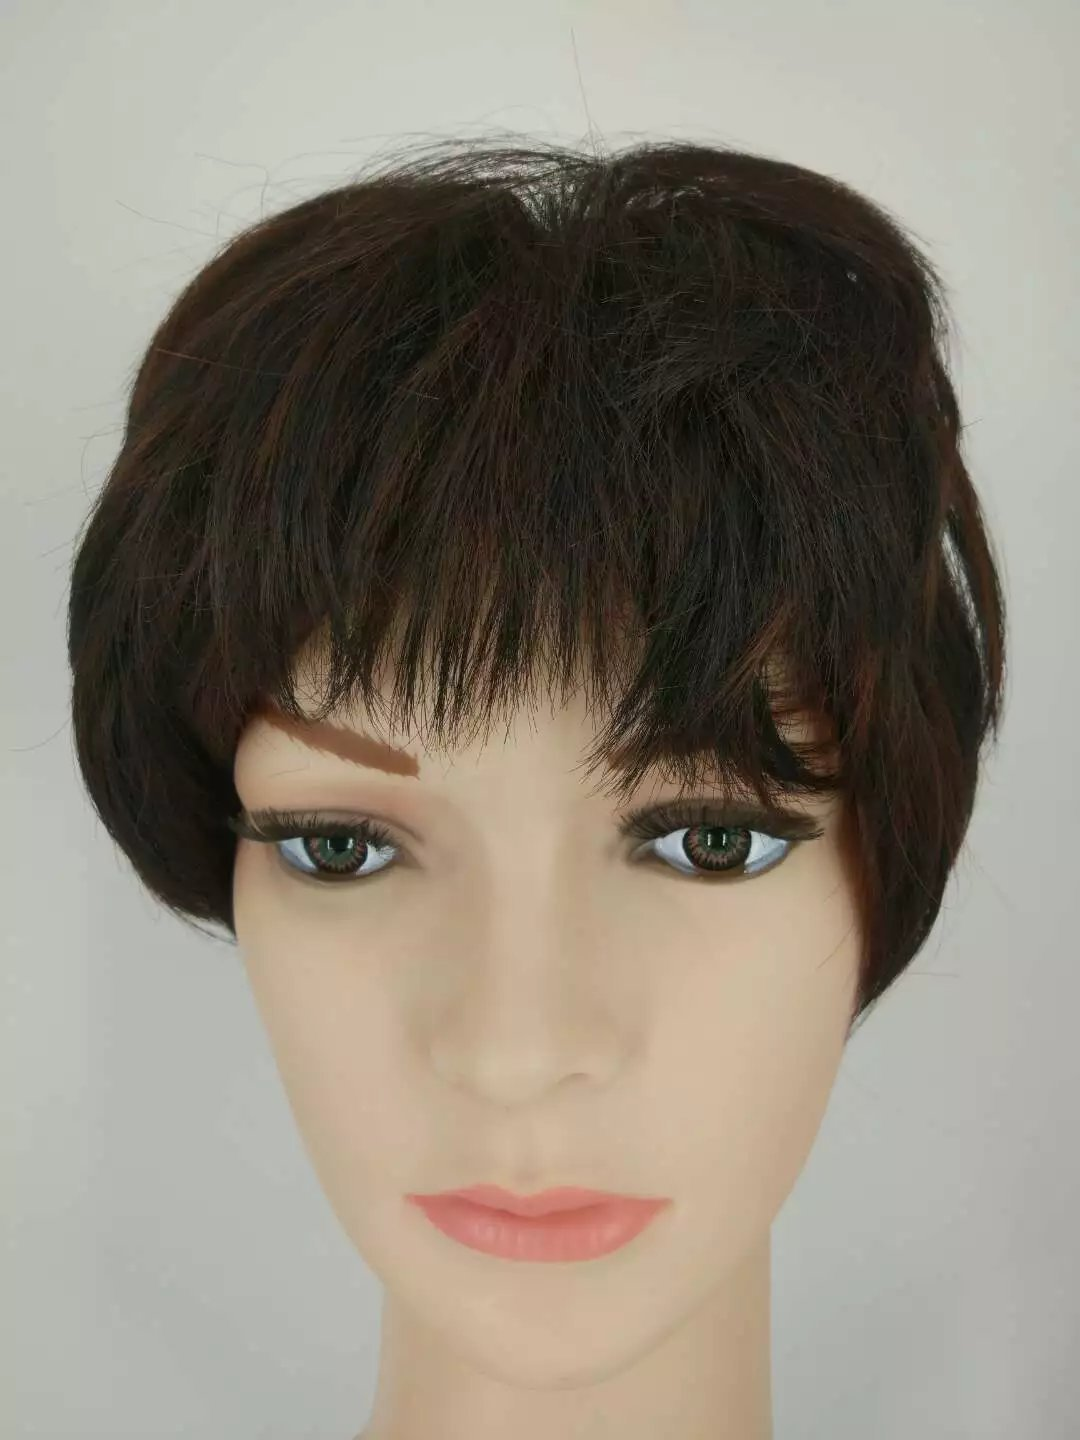 Amazon.com : Synthetic Short Wig Afro Kinky Wavy Mocha Bob Hair Wigs Cosplay European Africans Fashion Salon Synthetic Short Wig : Beauty